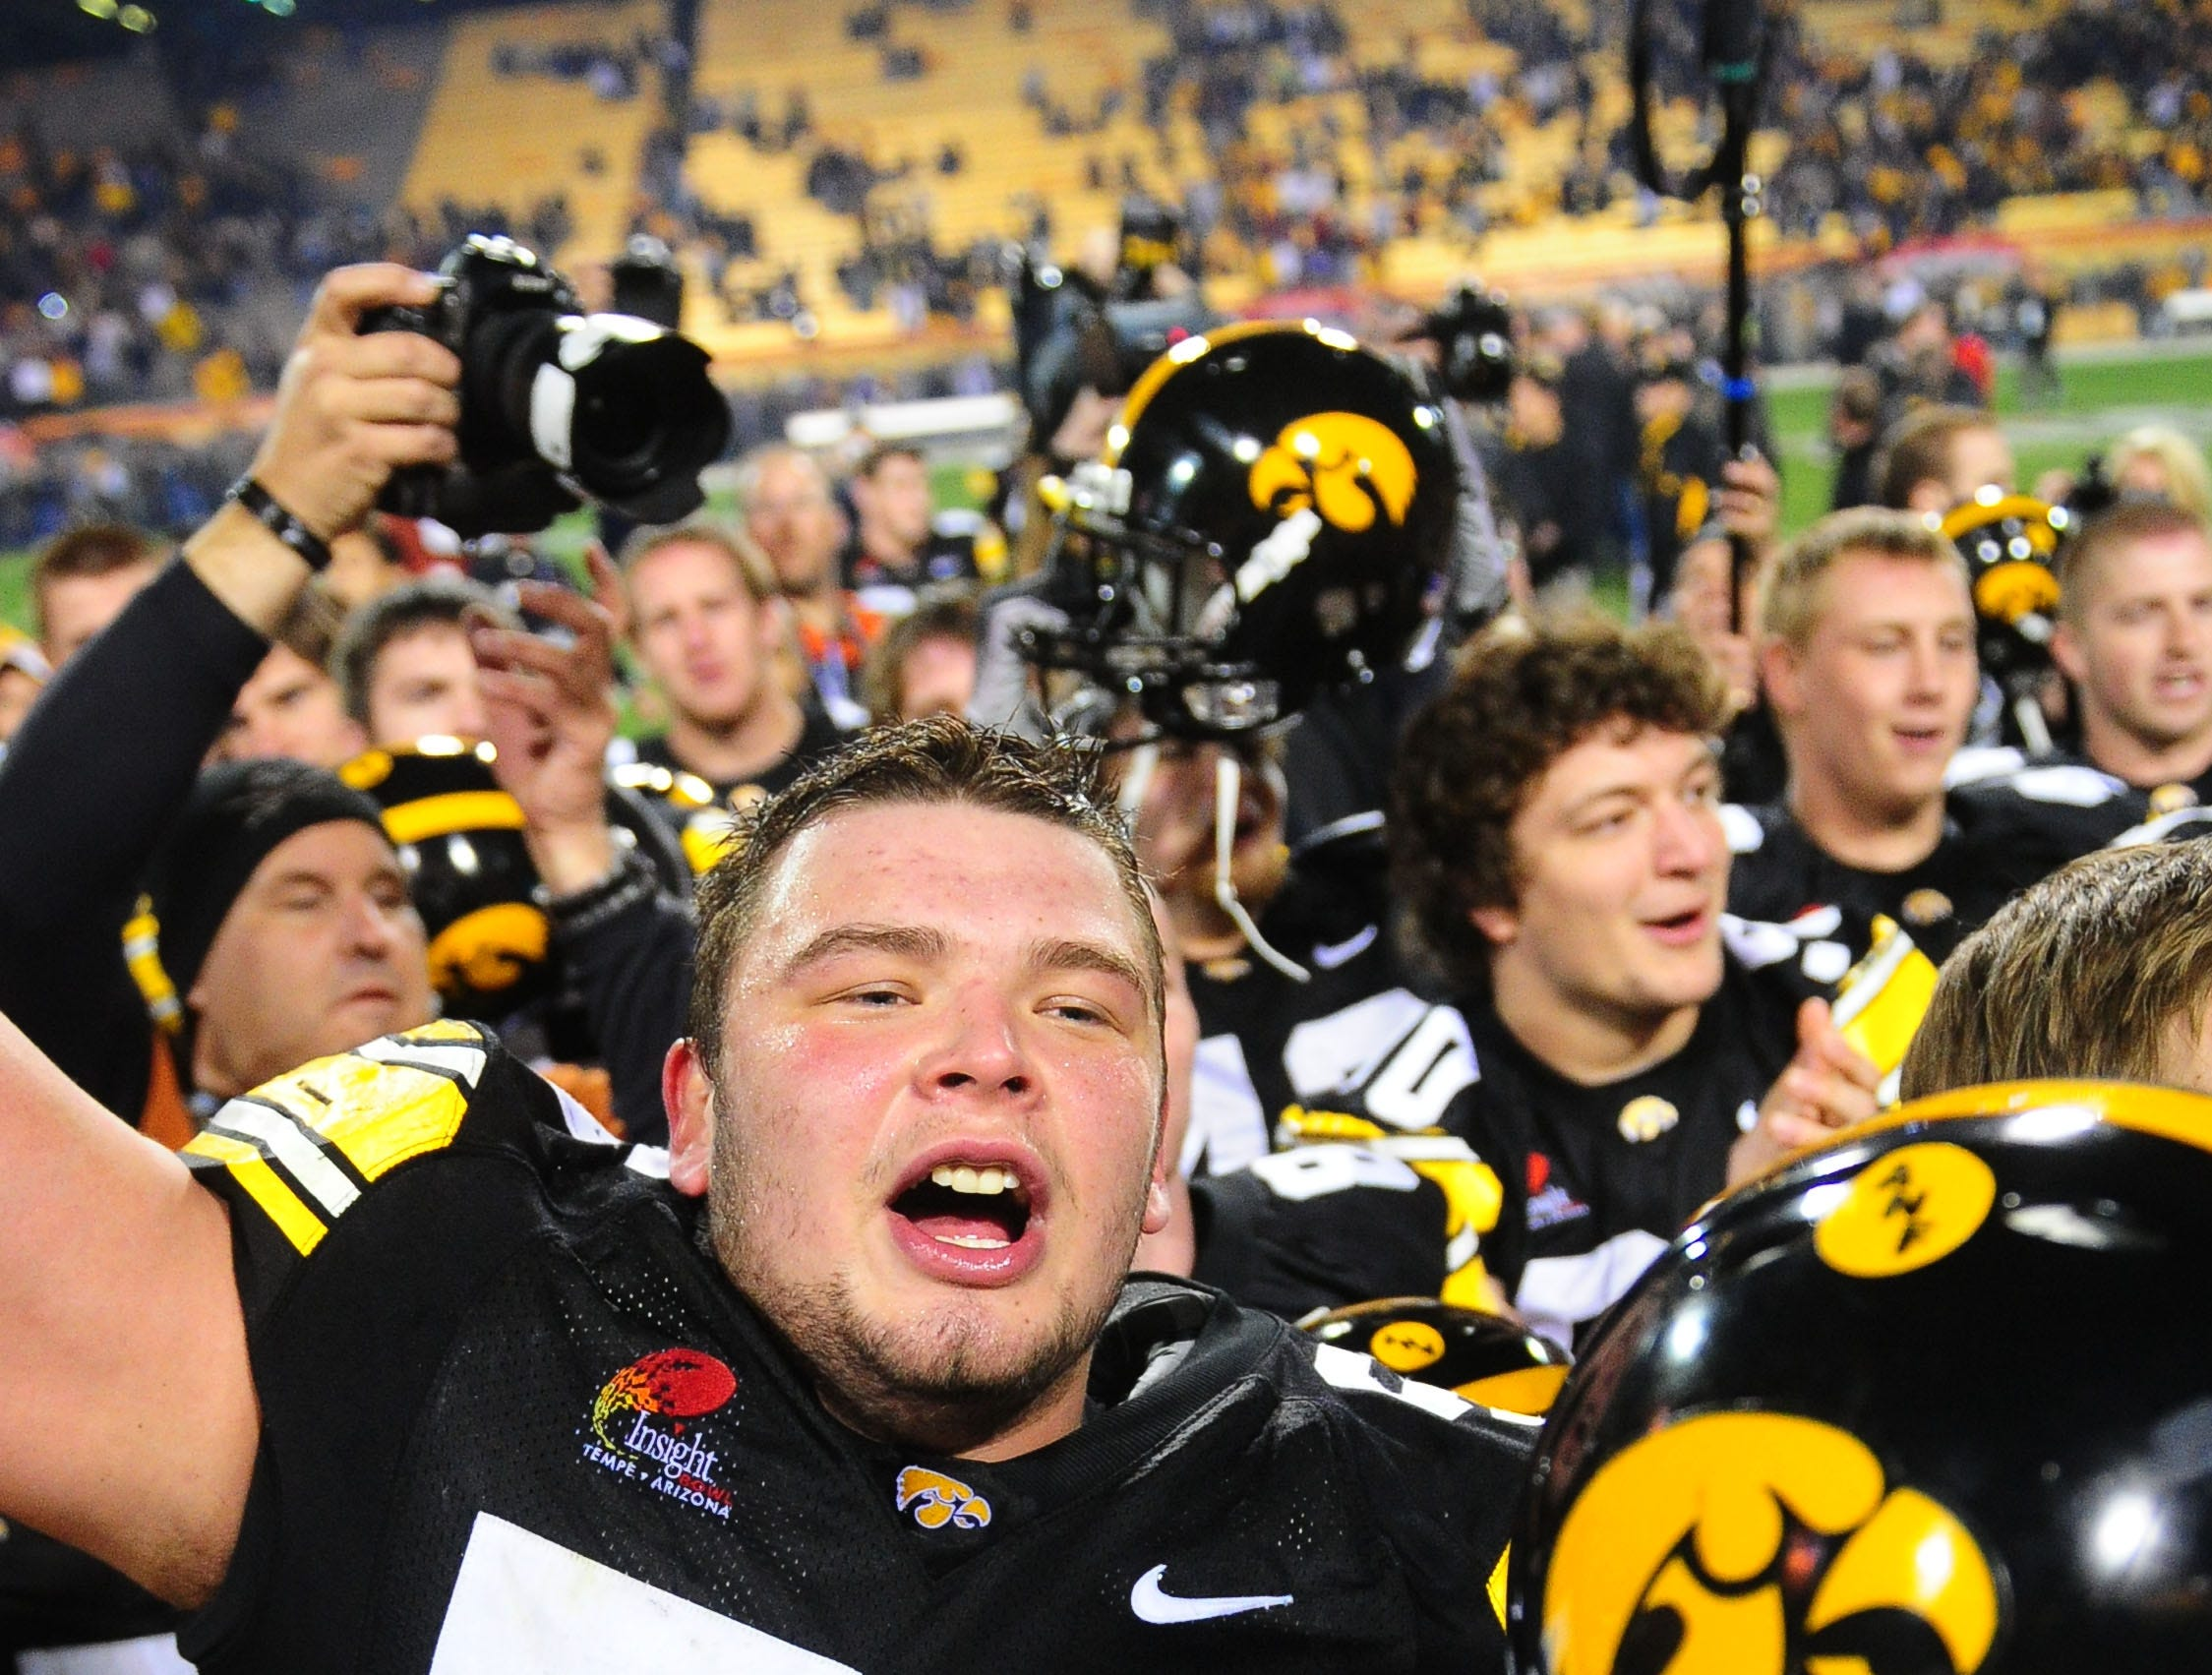 Dec. 28, 2010; Tempe, AZ, USA; Iowa Hawkeyes offensive lineman (56) Markus Zusevics against the Missouri Tigers in the 2010 Insight Bowl at Sun Devil Stadium. Iowa defeated Missouri 27-24. Mandatory Credit: Mark J. Rebilas-USA TODAY Sports